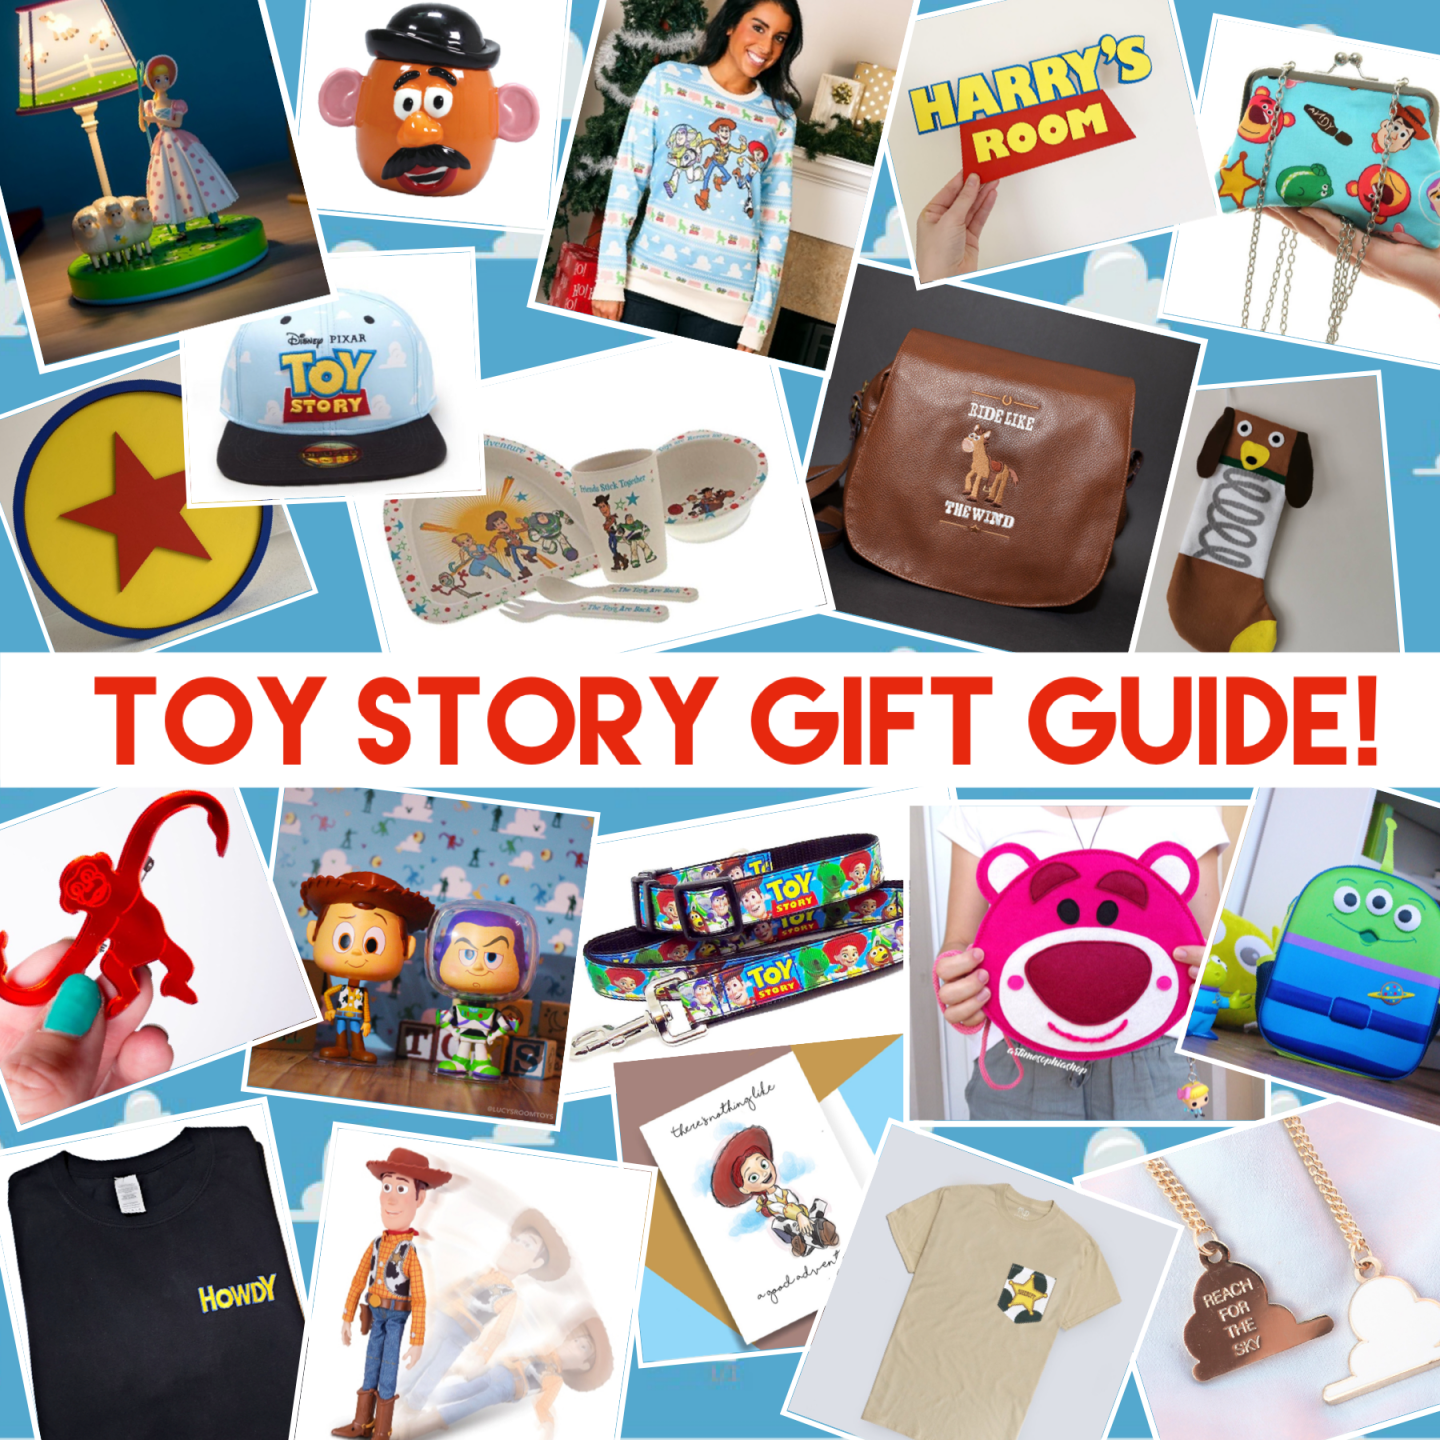 Toy Story Gift Guide!